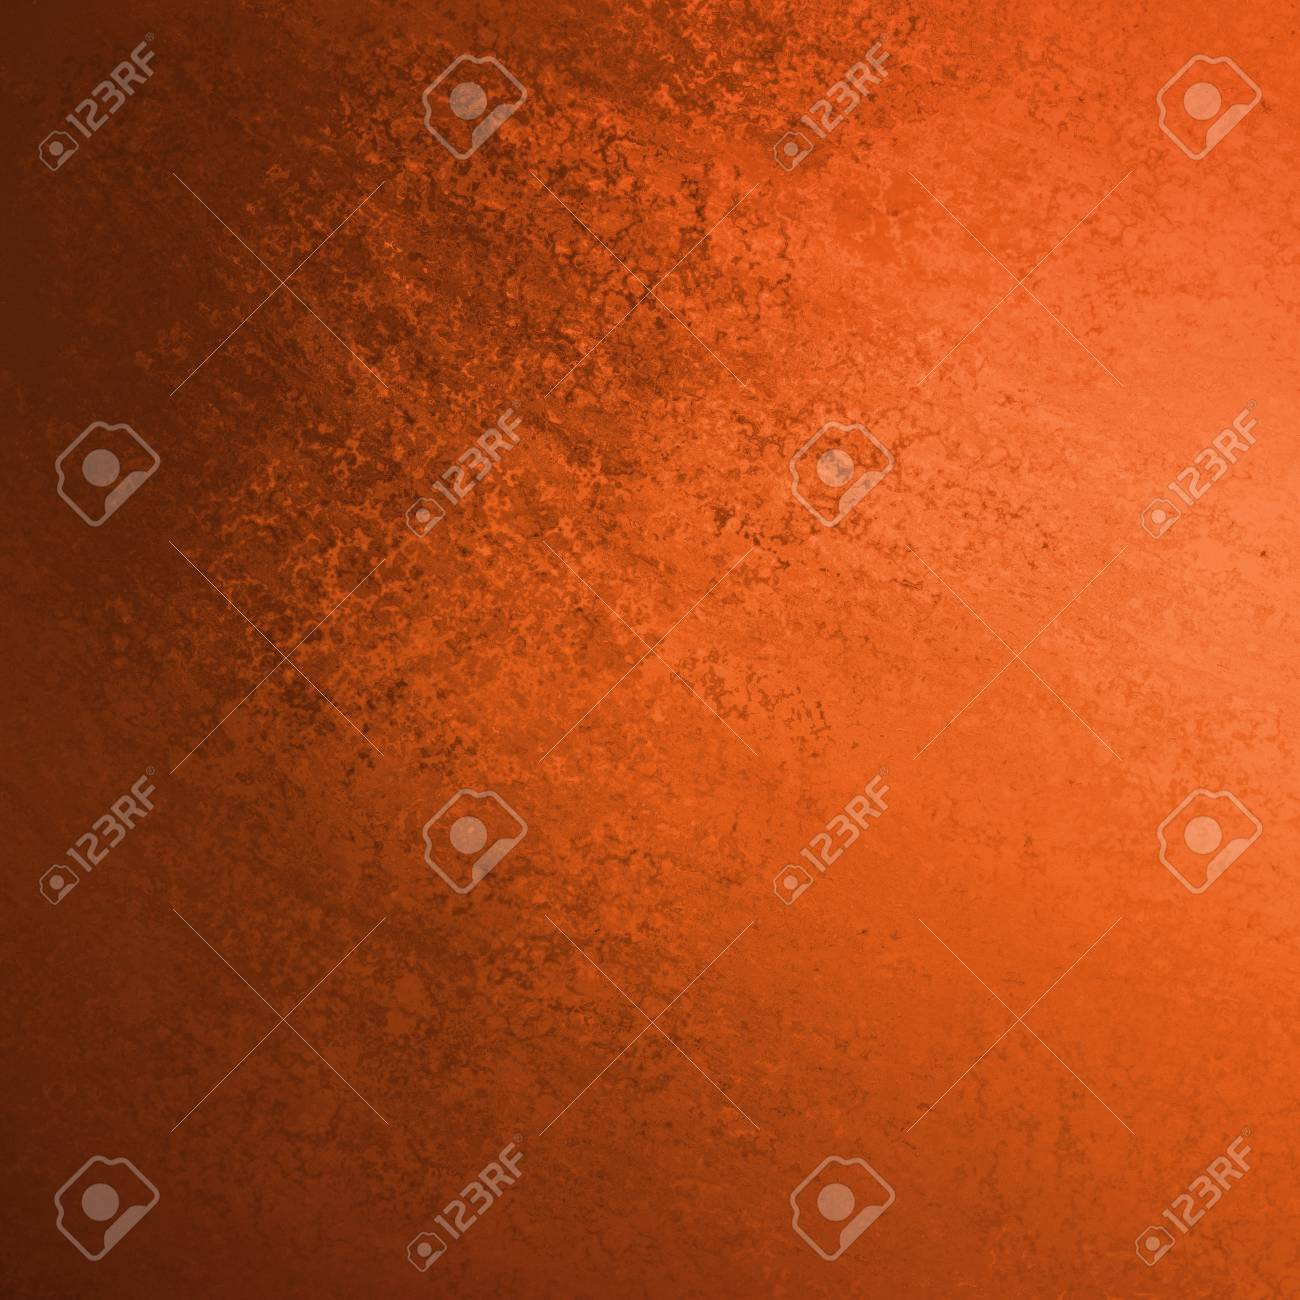 Warm Burnt Orange Background With Black Vintage Grunge Texture Stock Photo Picture And Royalty Free Image Image 106795491